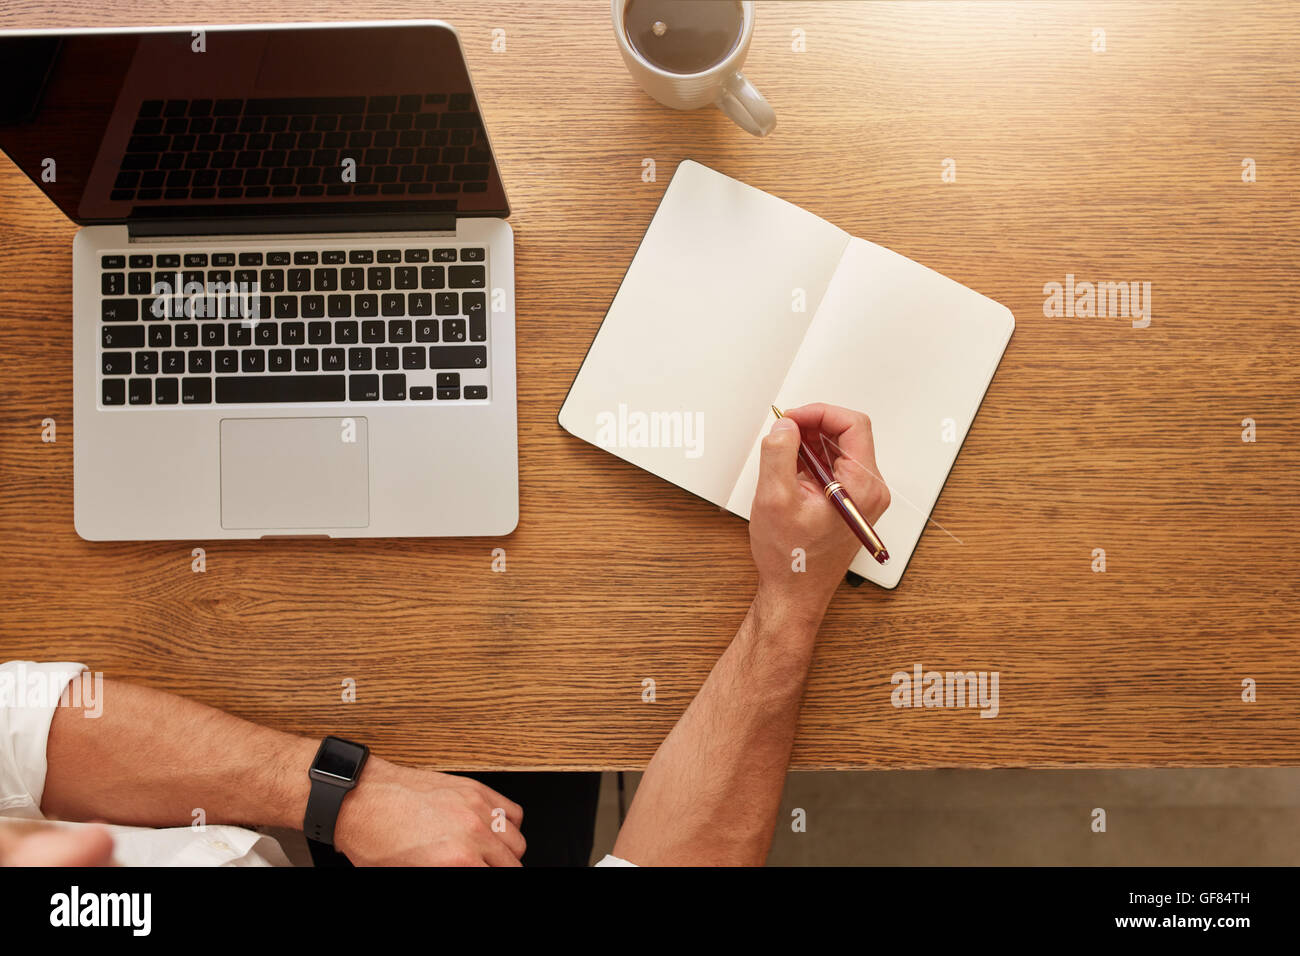 Close up of man writing notes in personal notebook with a laptop and cup of coffee on table. - Stock Image